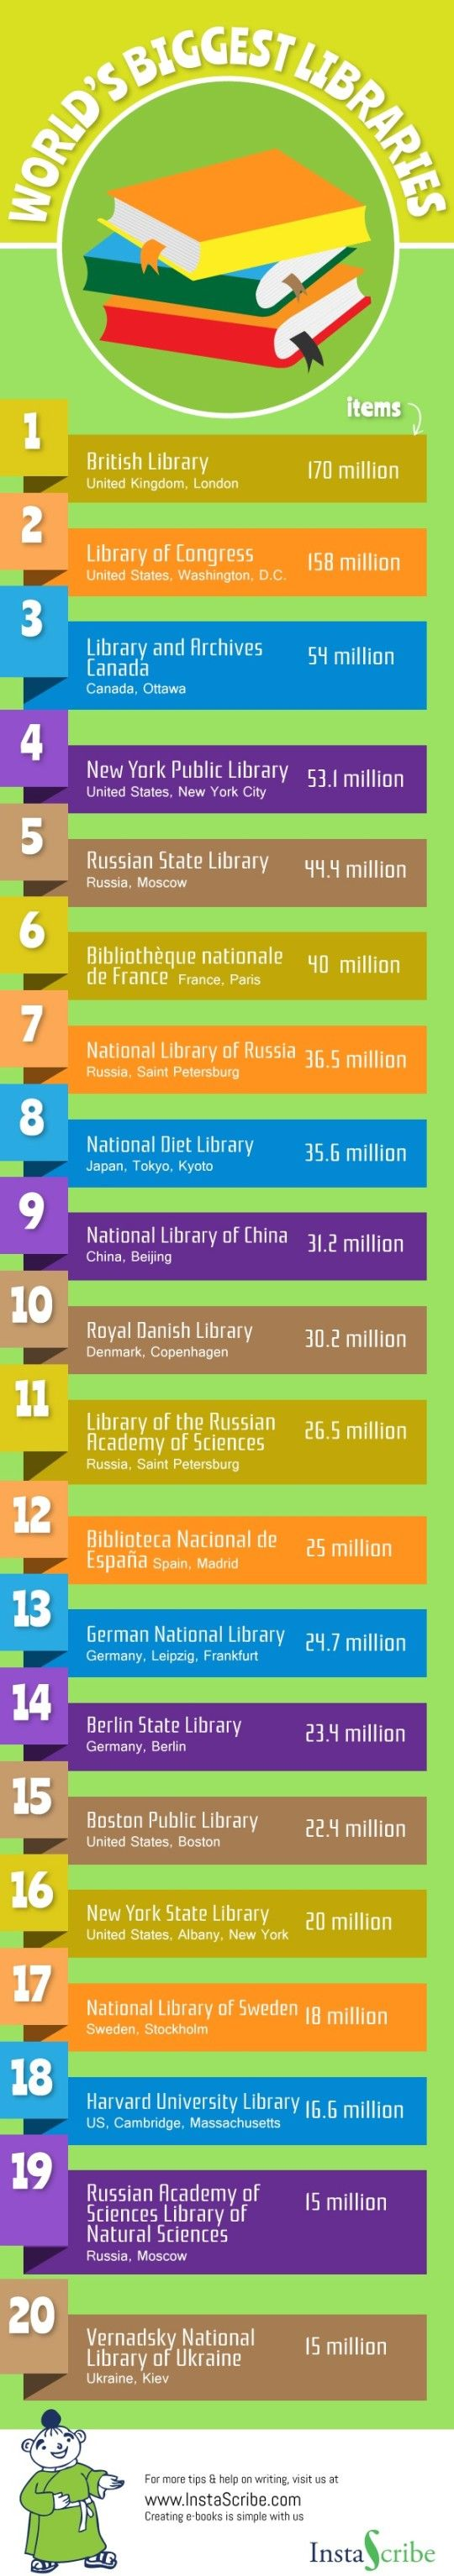 20 Biggest Libraries in the World (infographic) by Ola Kowalczyk on March 3, 2016 ~ Ebook creation platform InstaScribe has created a simple infographic that lists 20 libraries according to the # of items collected. It turns out that the Library of Congress, w/ 158 mill. items, gives way to the British Library w/ 170 mill. | The Library & Archives Canada takes 3rd place (54 mill.), followed by the NY Public Library & the Russian State Library.